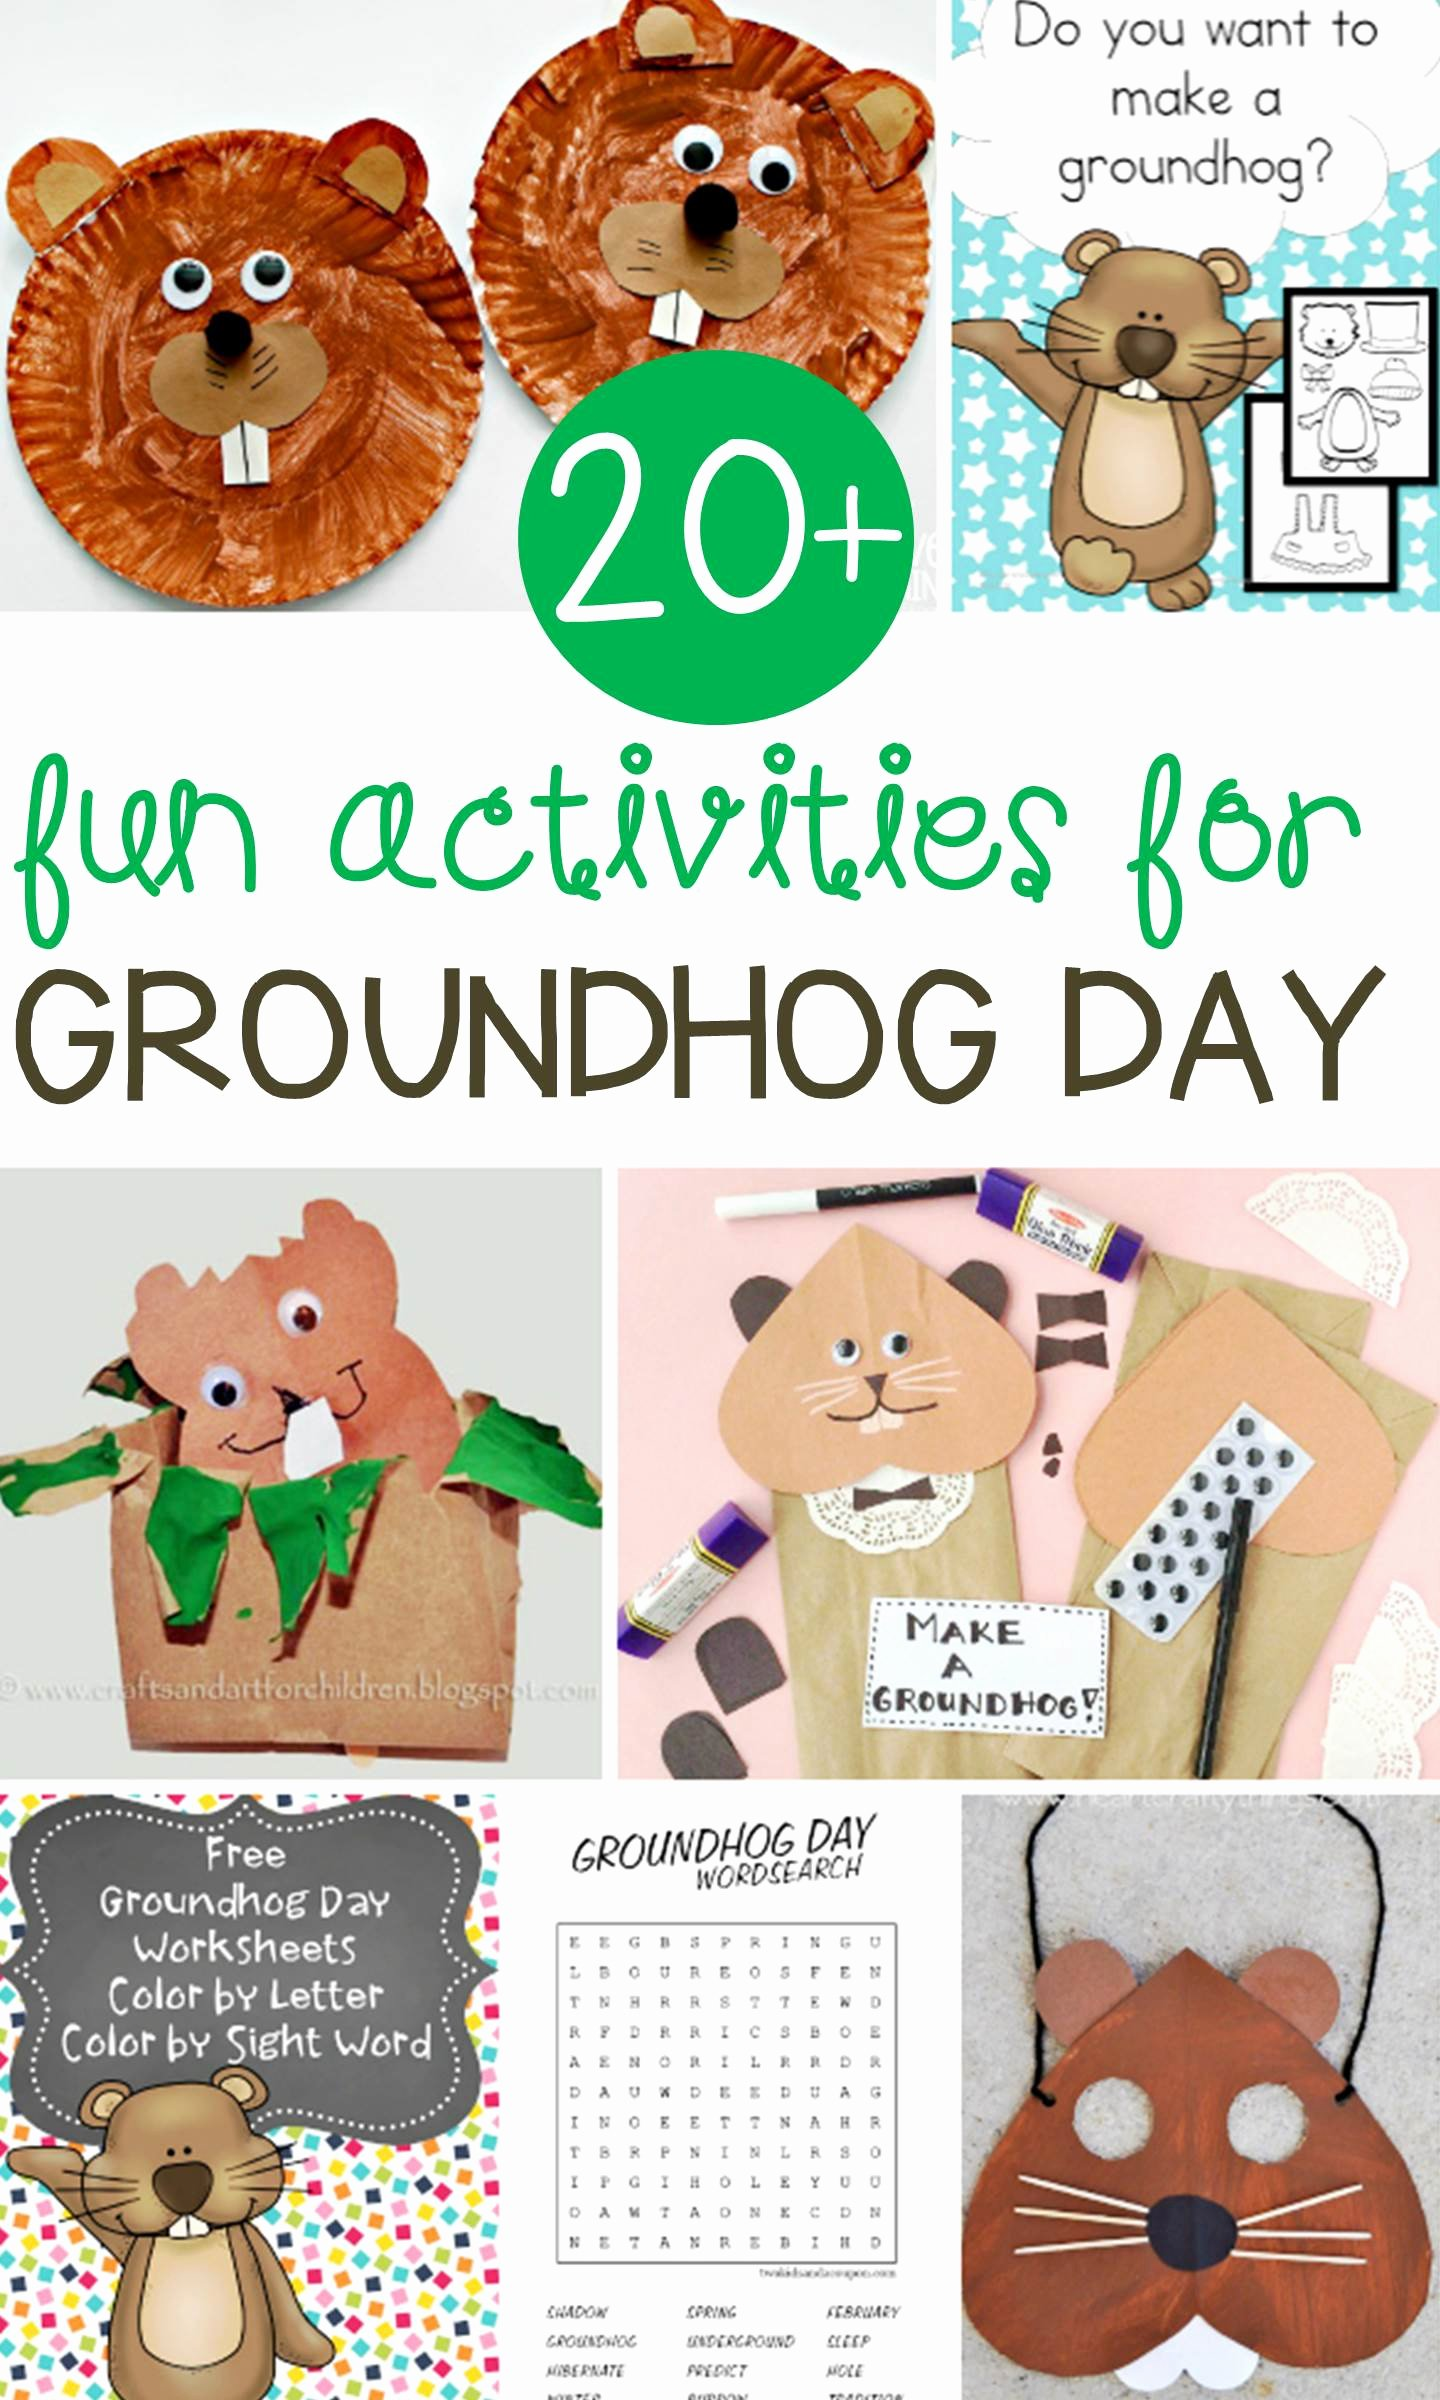 Groundhog Day Worksheets for Preschoolers New Fun Groundhog Day Activities for Kids Learn & Celebrate